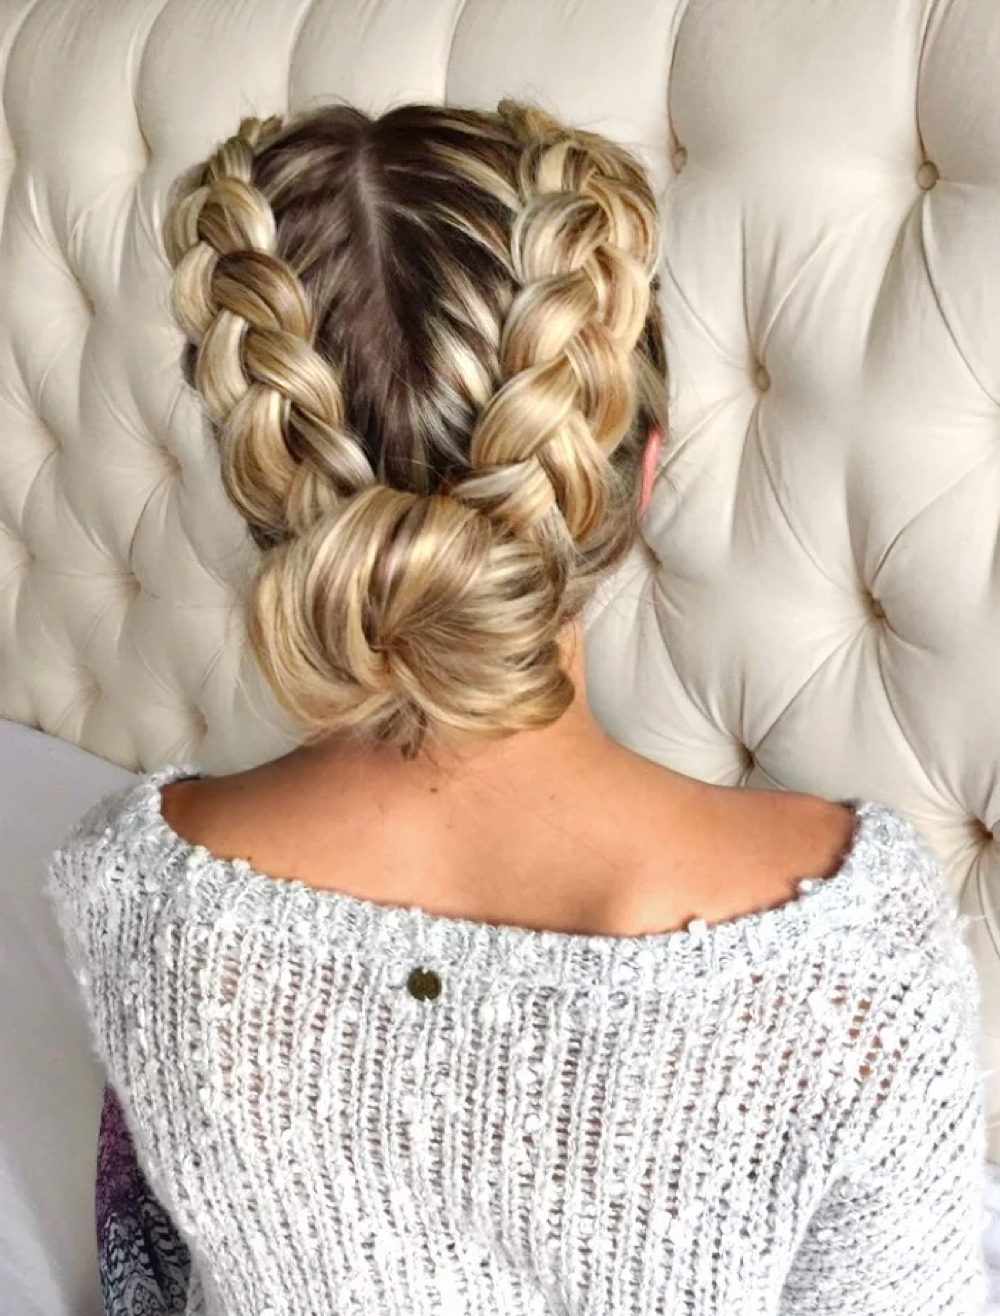 Widely Used Vintage Inspired Braided Updo Hairstyles Throughout 29 Gorgeous Braided Updo Ideas For 2019 (Gallery 10 of 20)